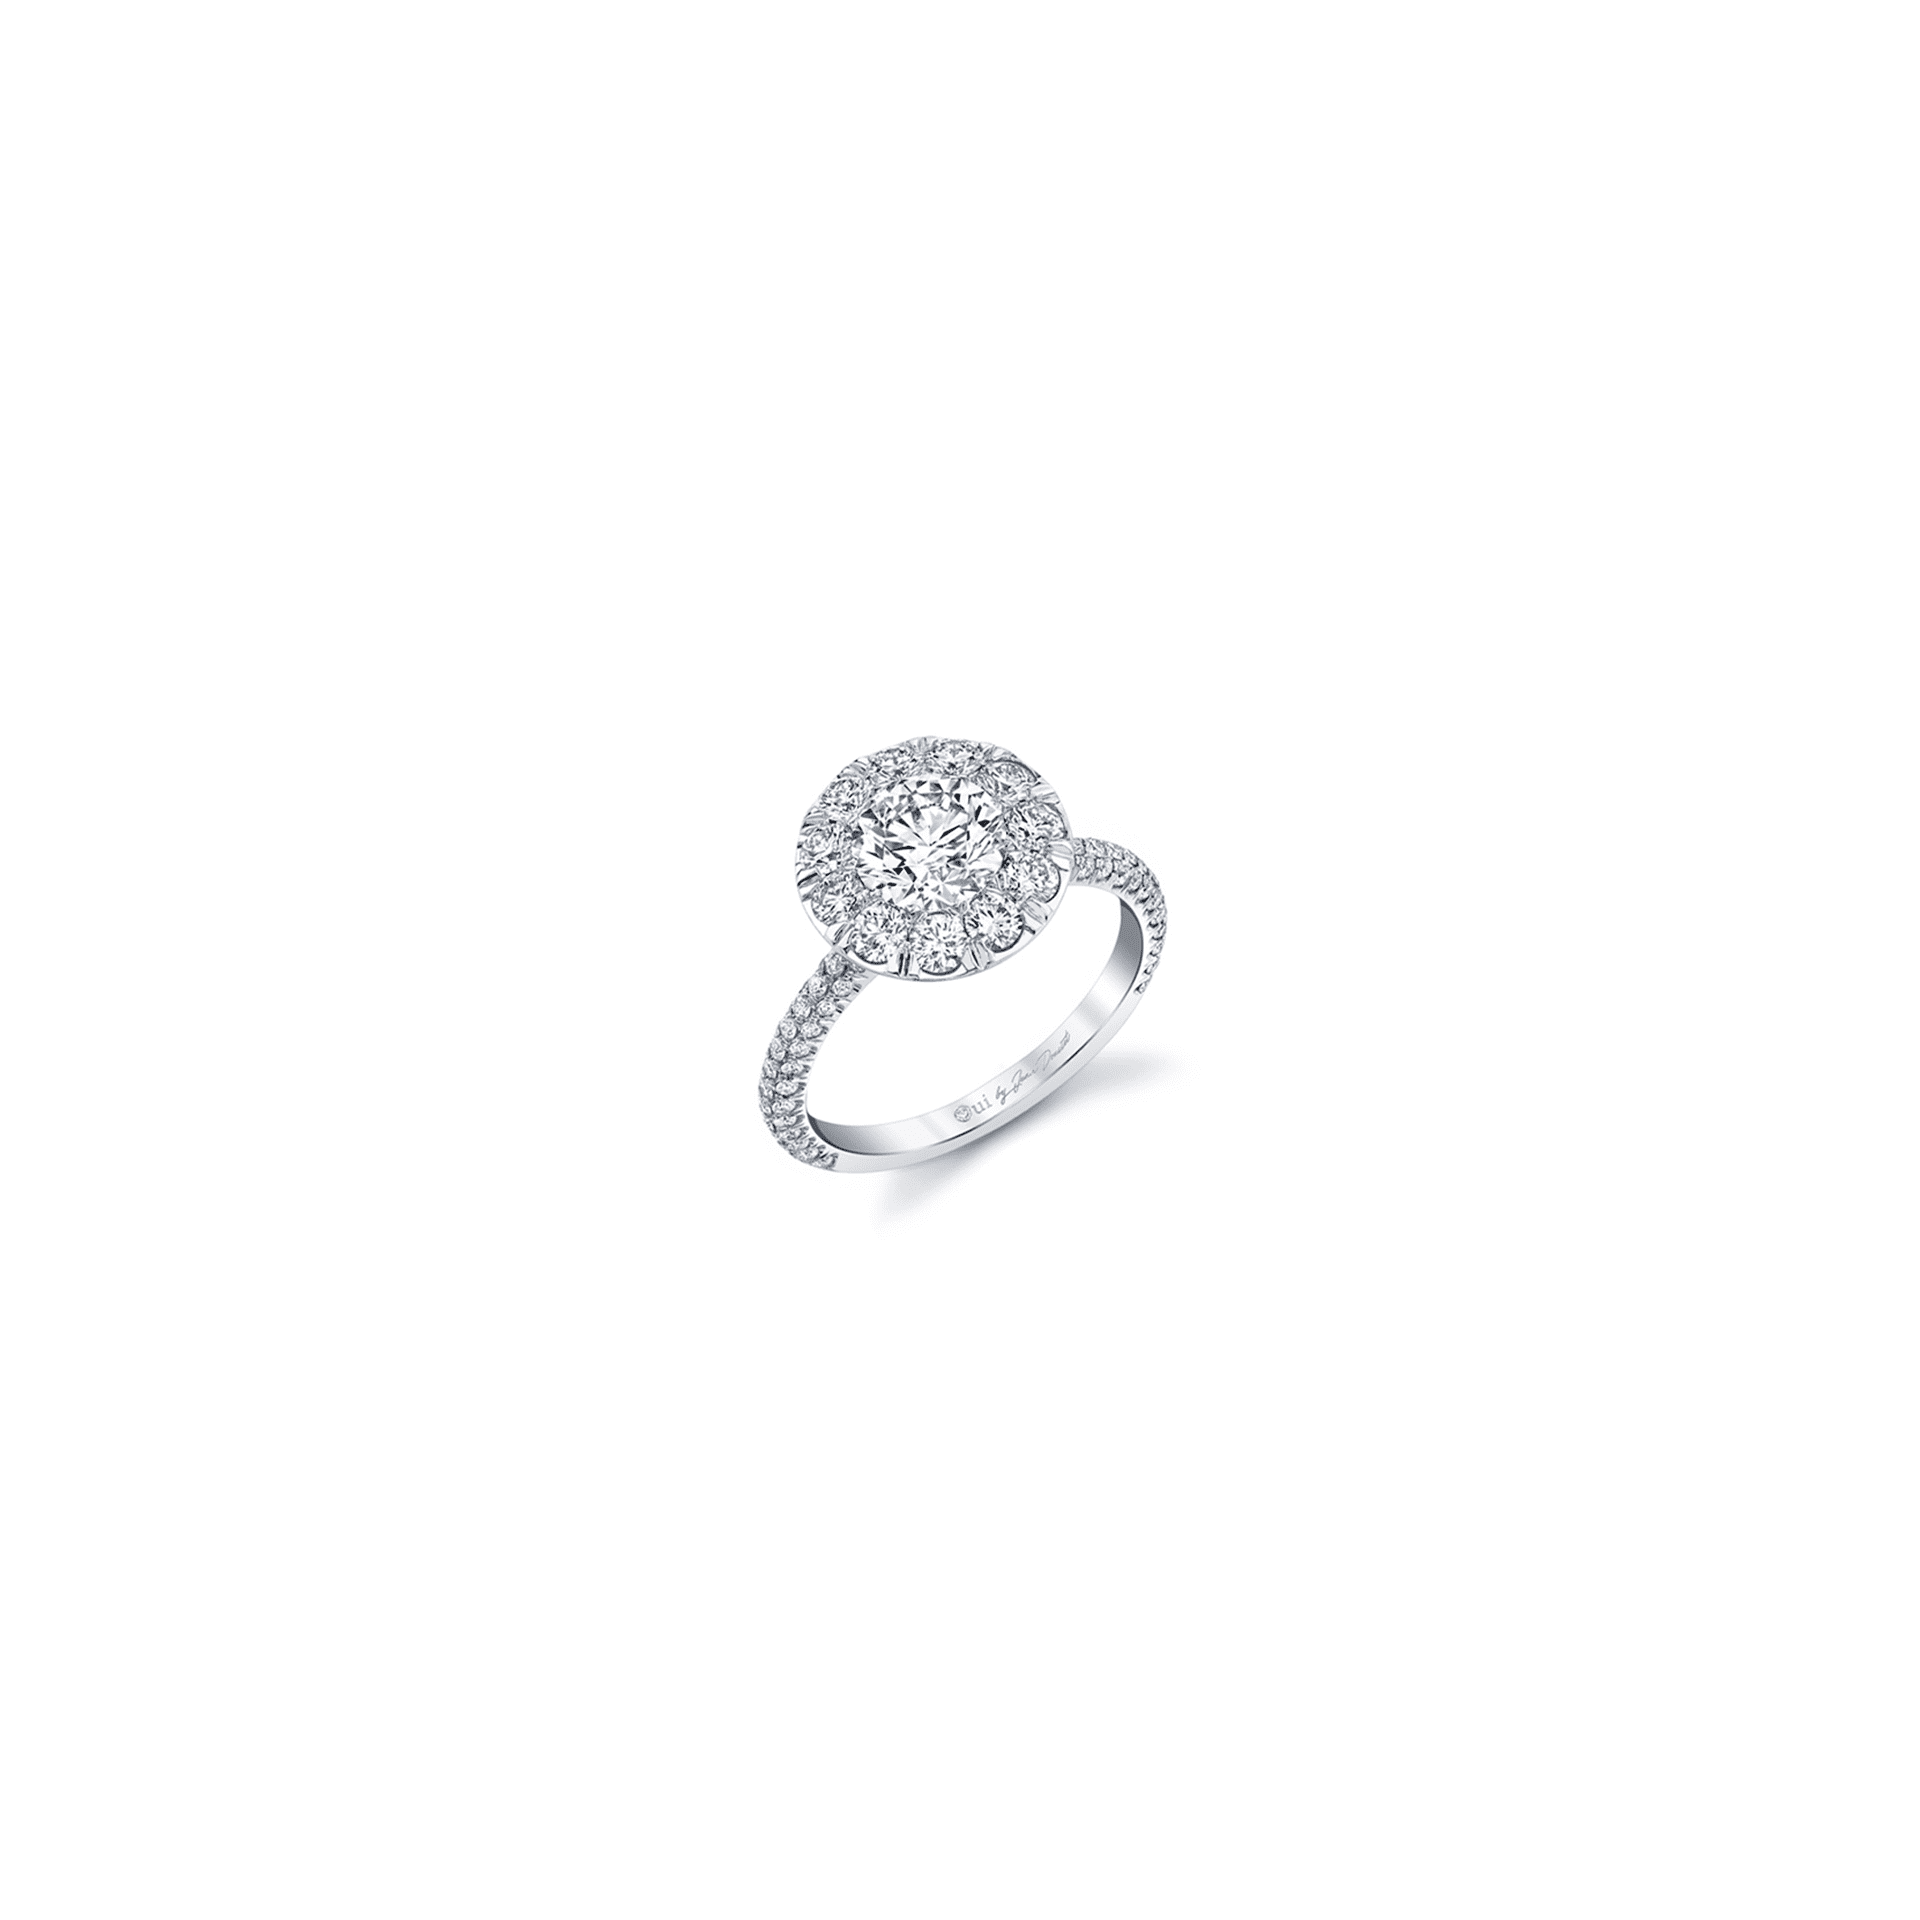 Jacqueline Floating Round Brilliant Seamless Solitaire® Engagement Ring with diamond pavé in 18k White Gold Front View by Oui by Jean Dousset